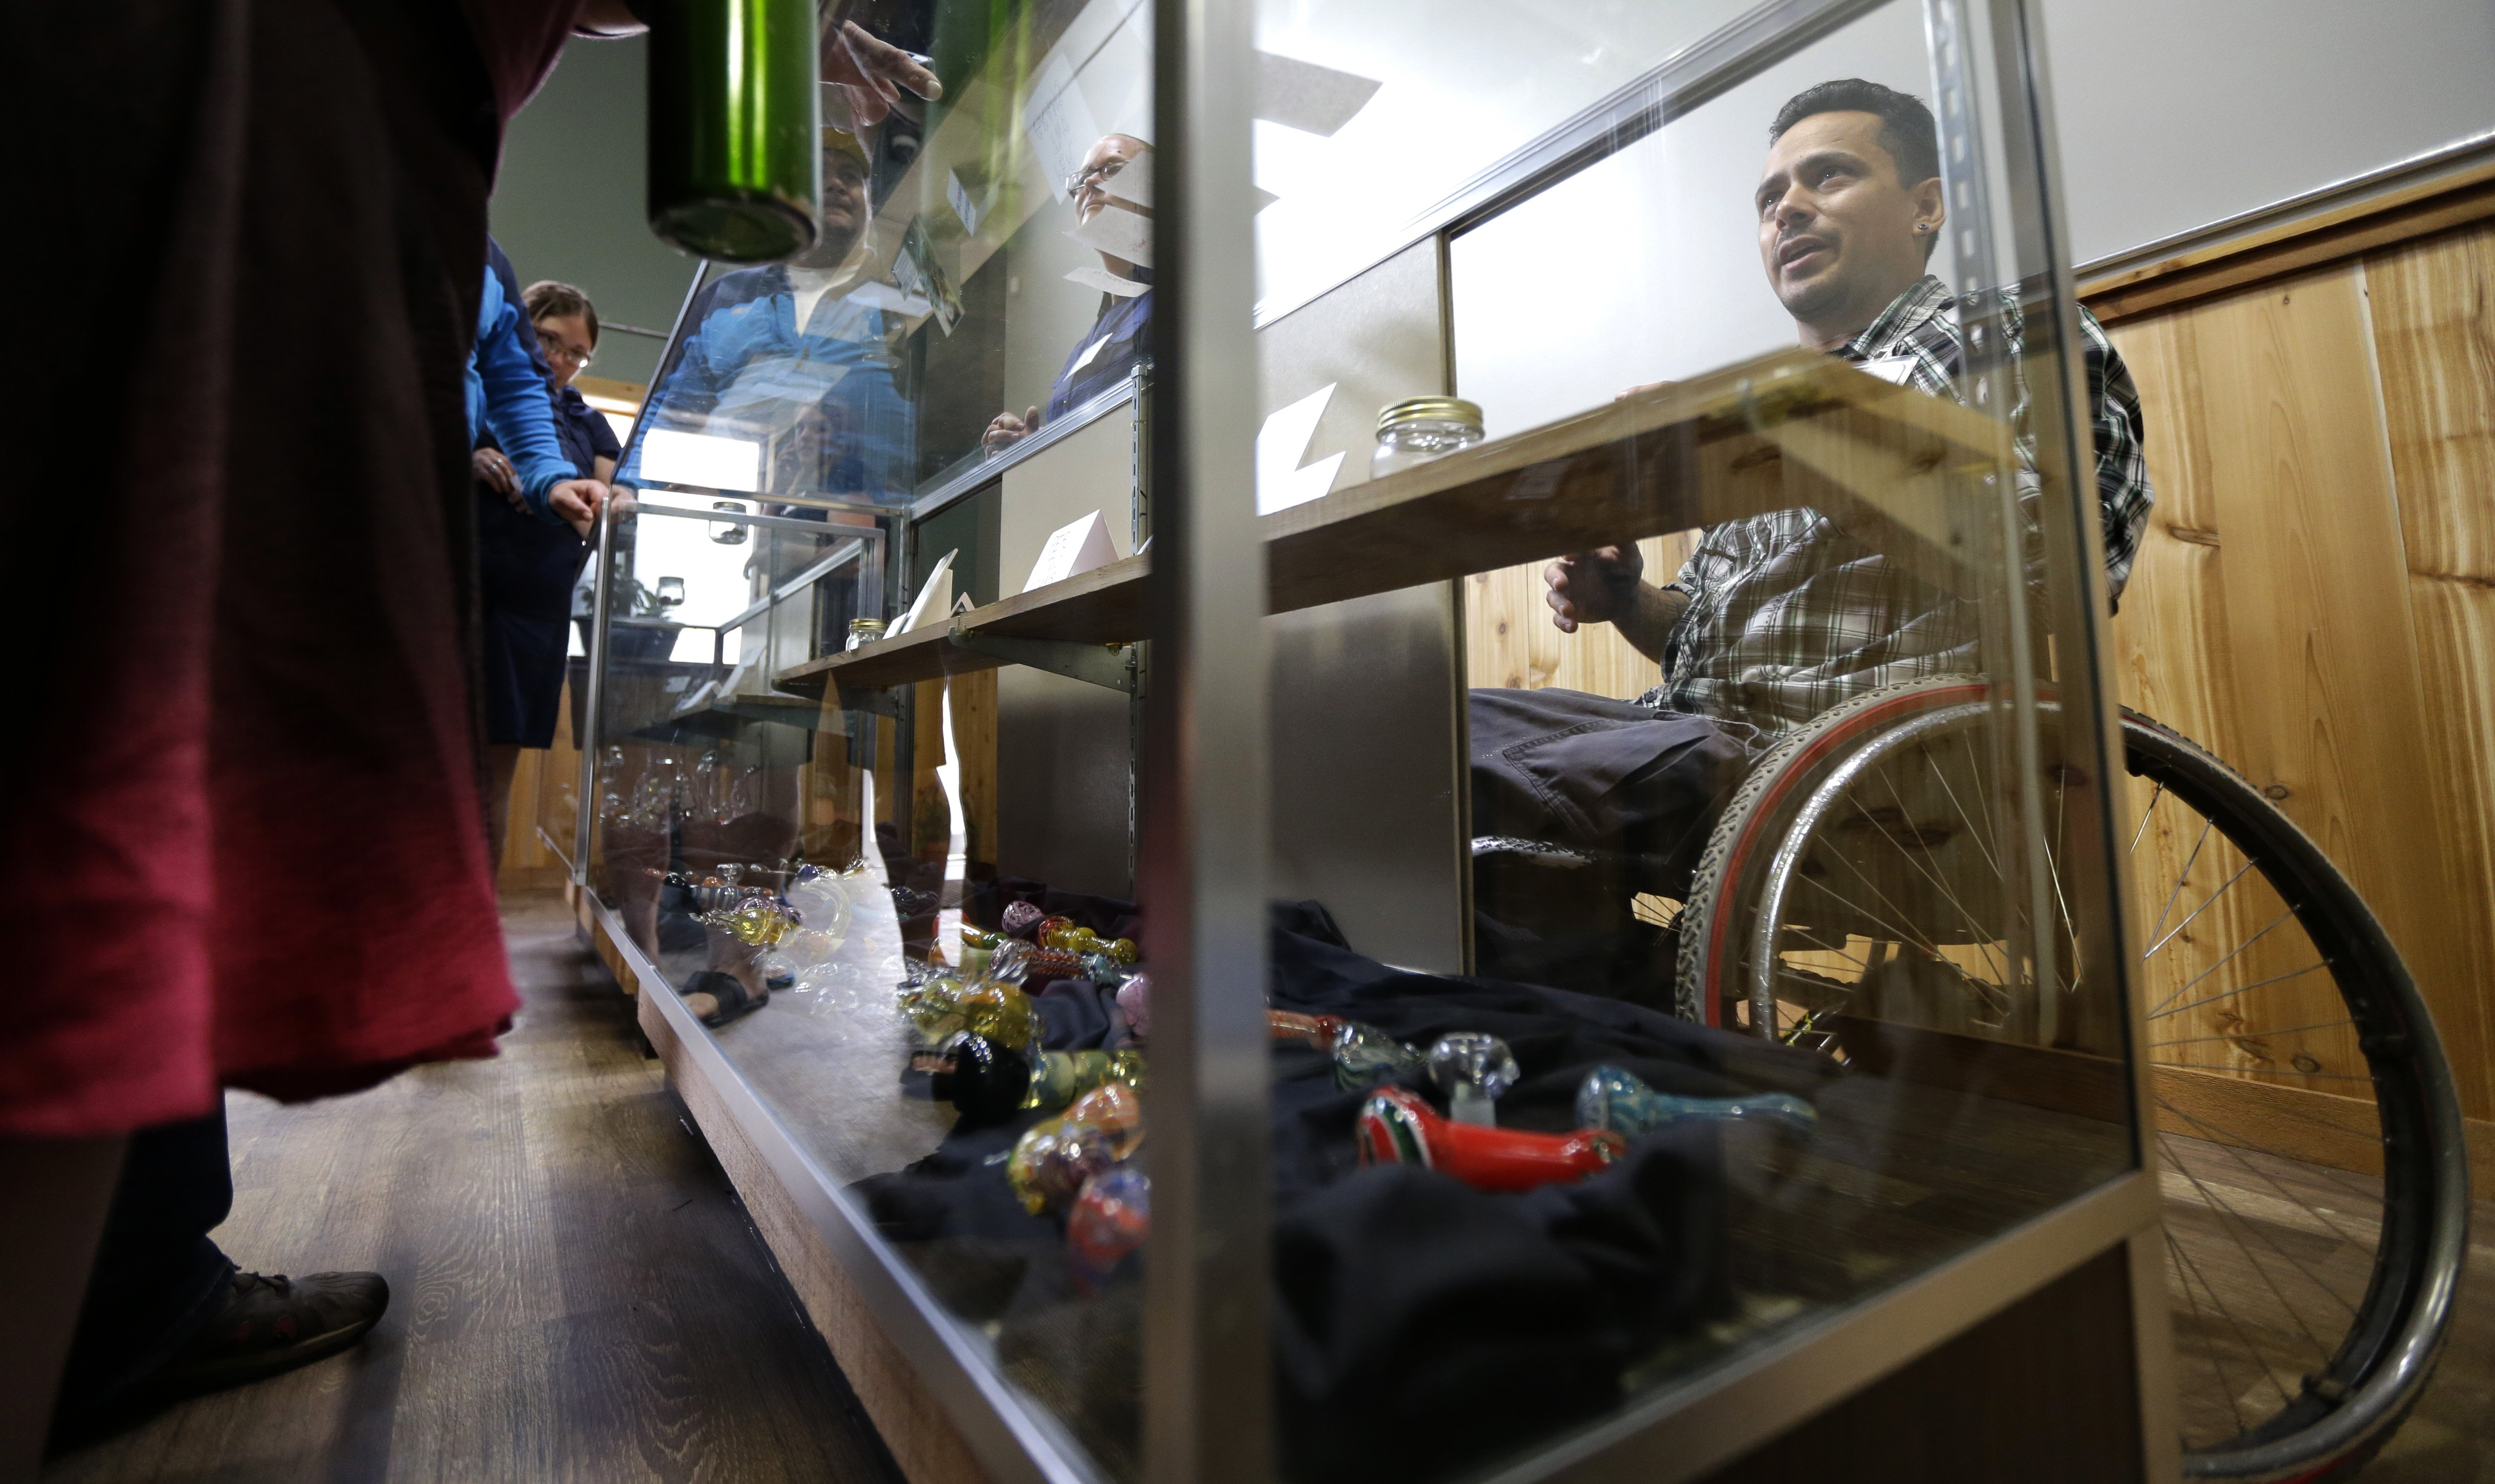 Jeremy Hunter, right, an employee at Top Shelf Cannabis talks about different strains of marijuana as he works behind a case displaying glass pipes in Bellingham, Wash. on July 8, 2014.